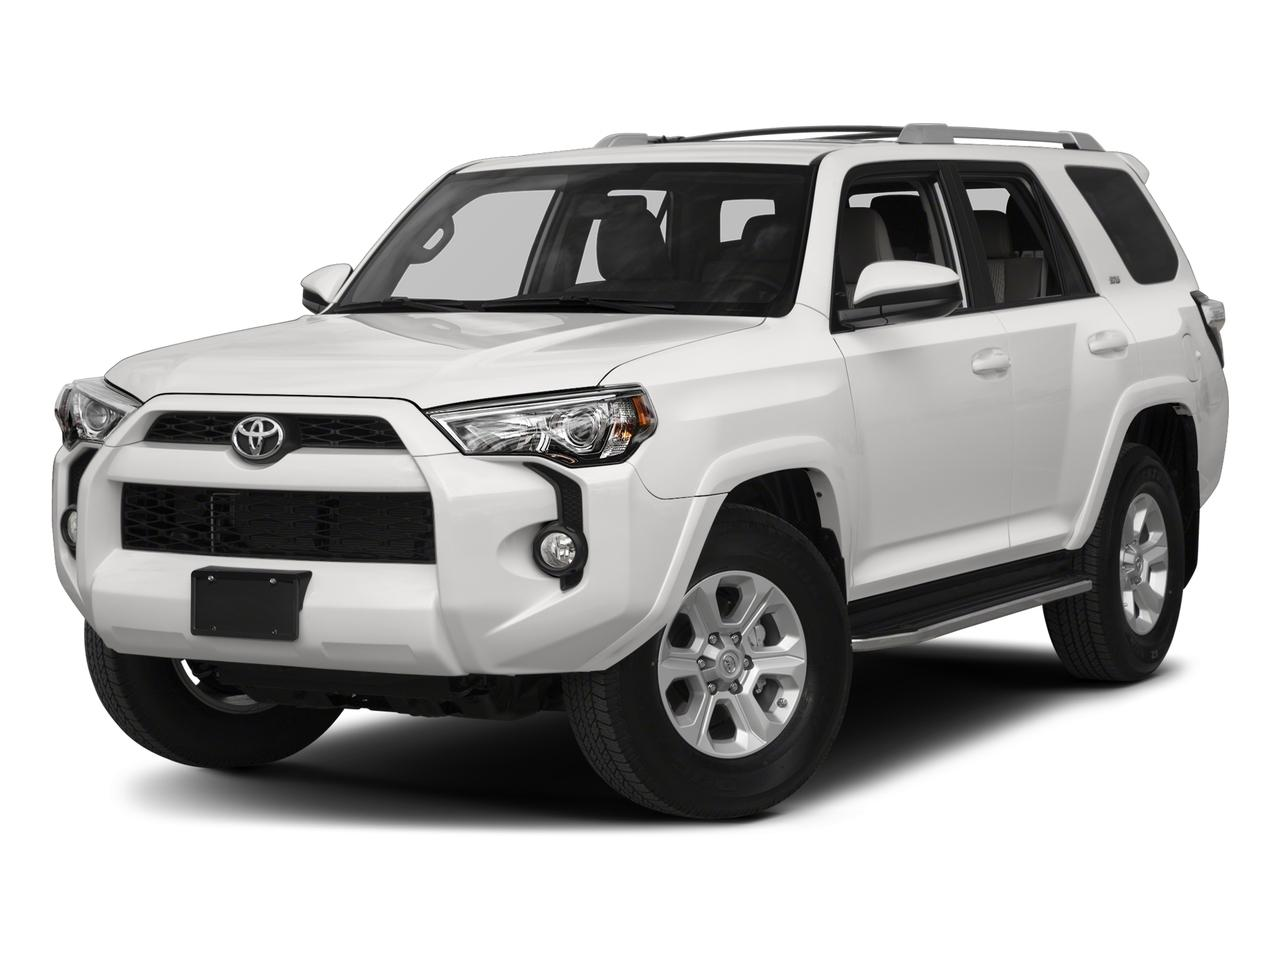 2017 Toyota 4Runner Vehicle Photo in Johnson City, TN 37601